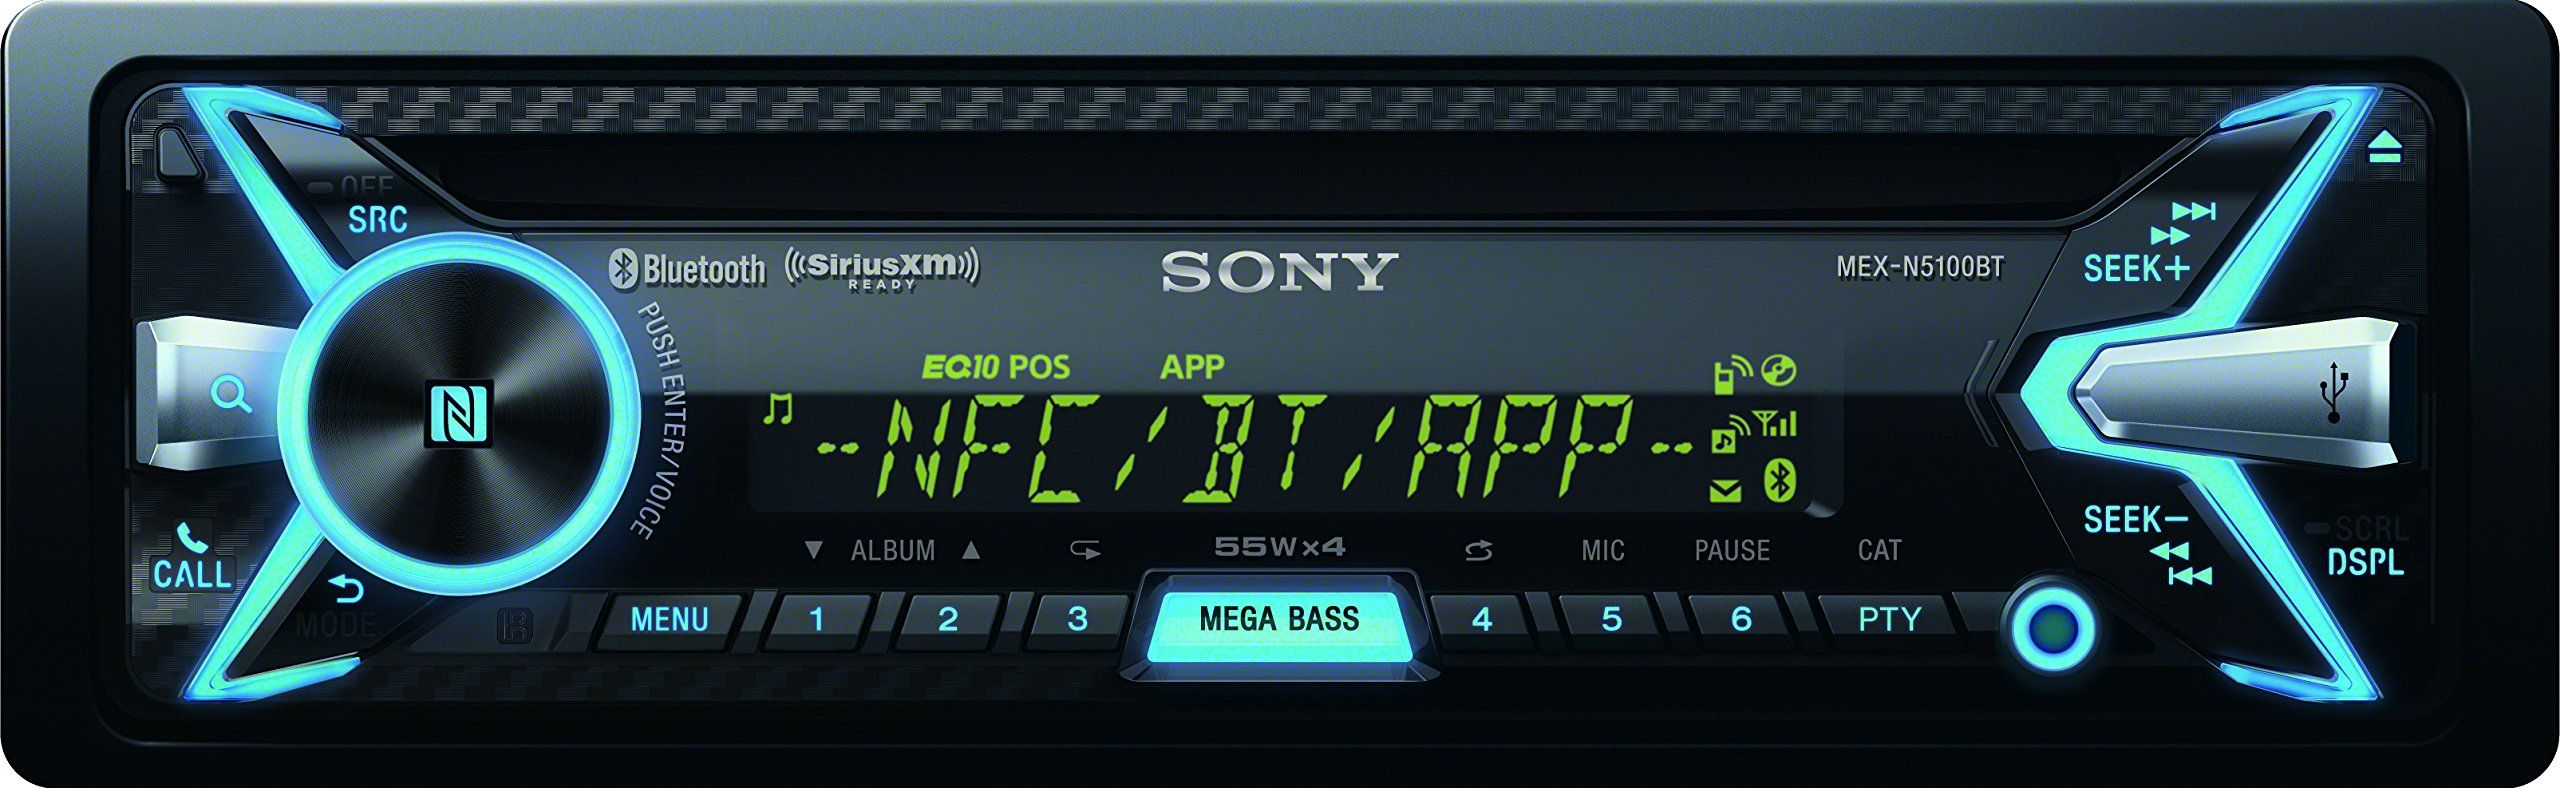 Sony Mexn5100bt Car Stereo Receiver With Bluetooth Nfc And App Power Acoustik Ptid 8920b Wiring Diagram Remote